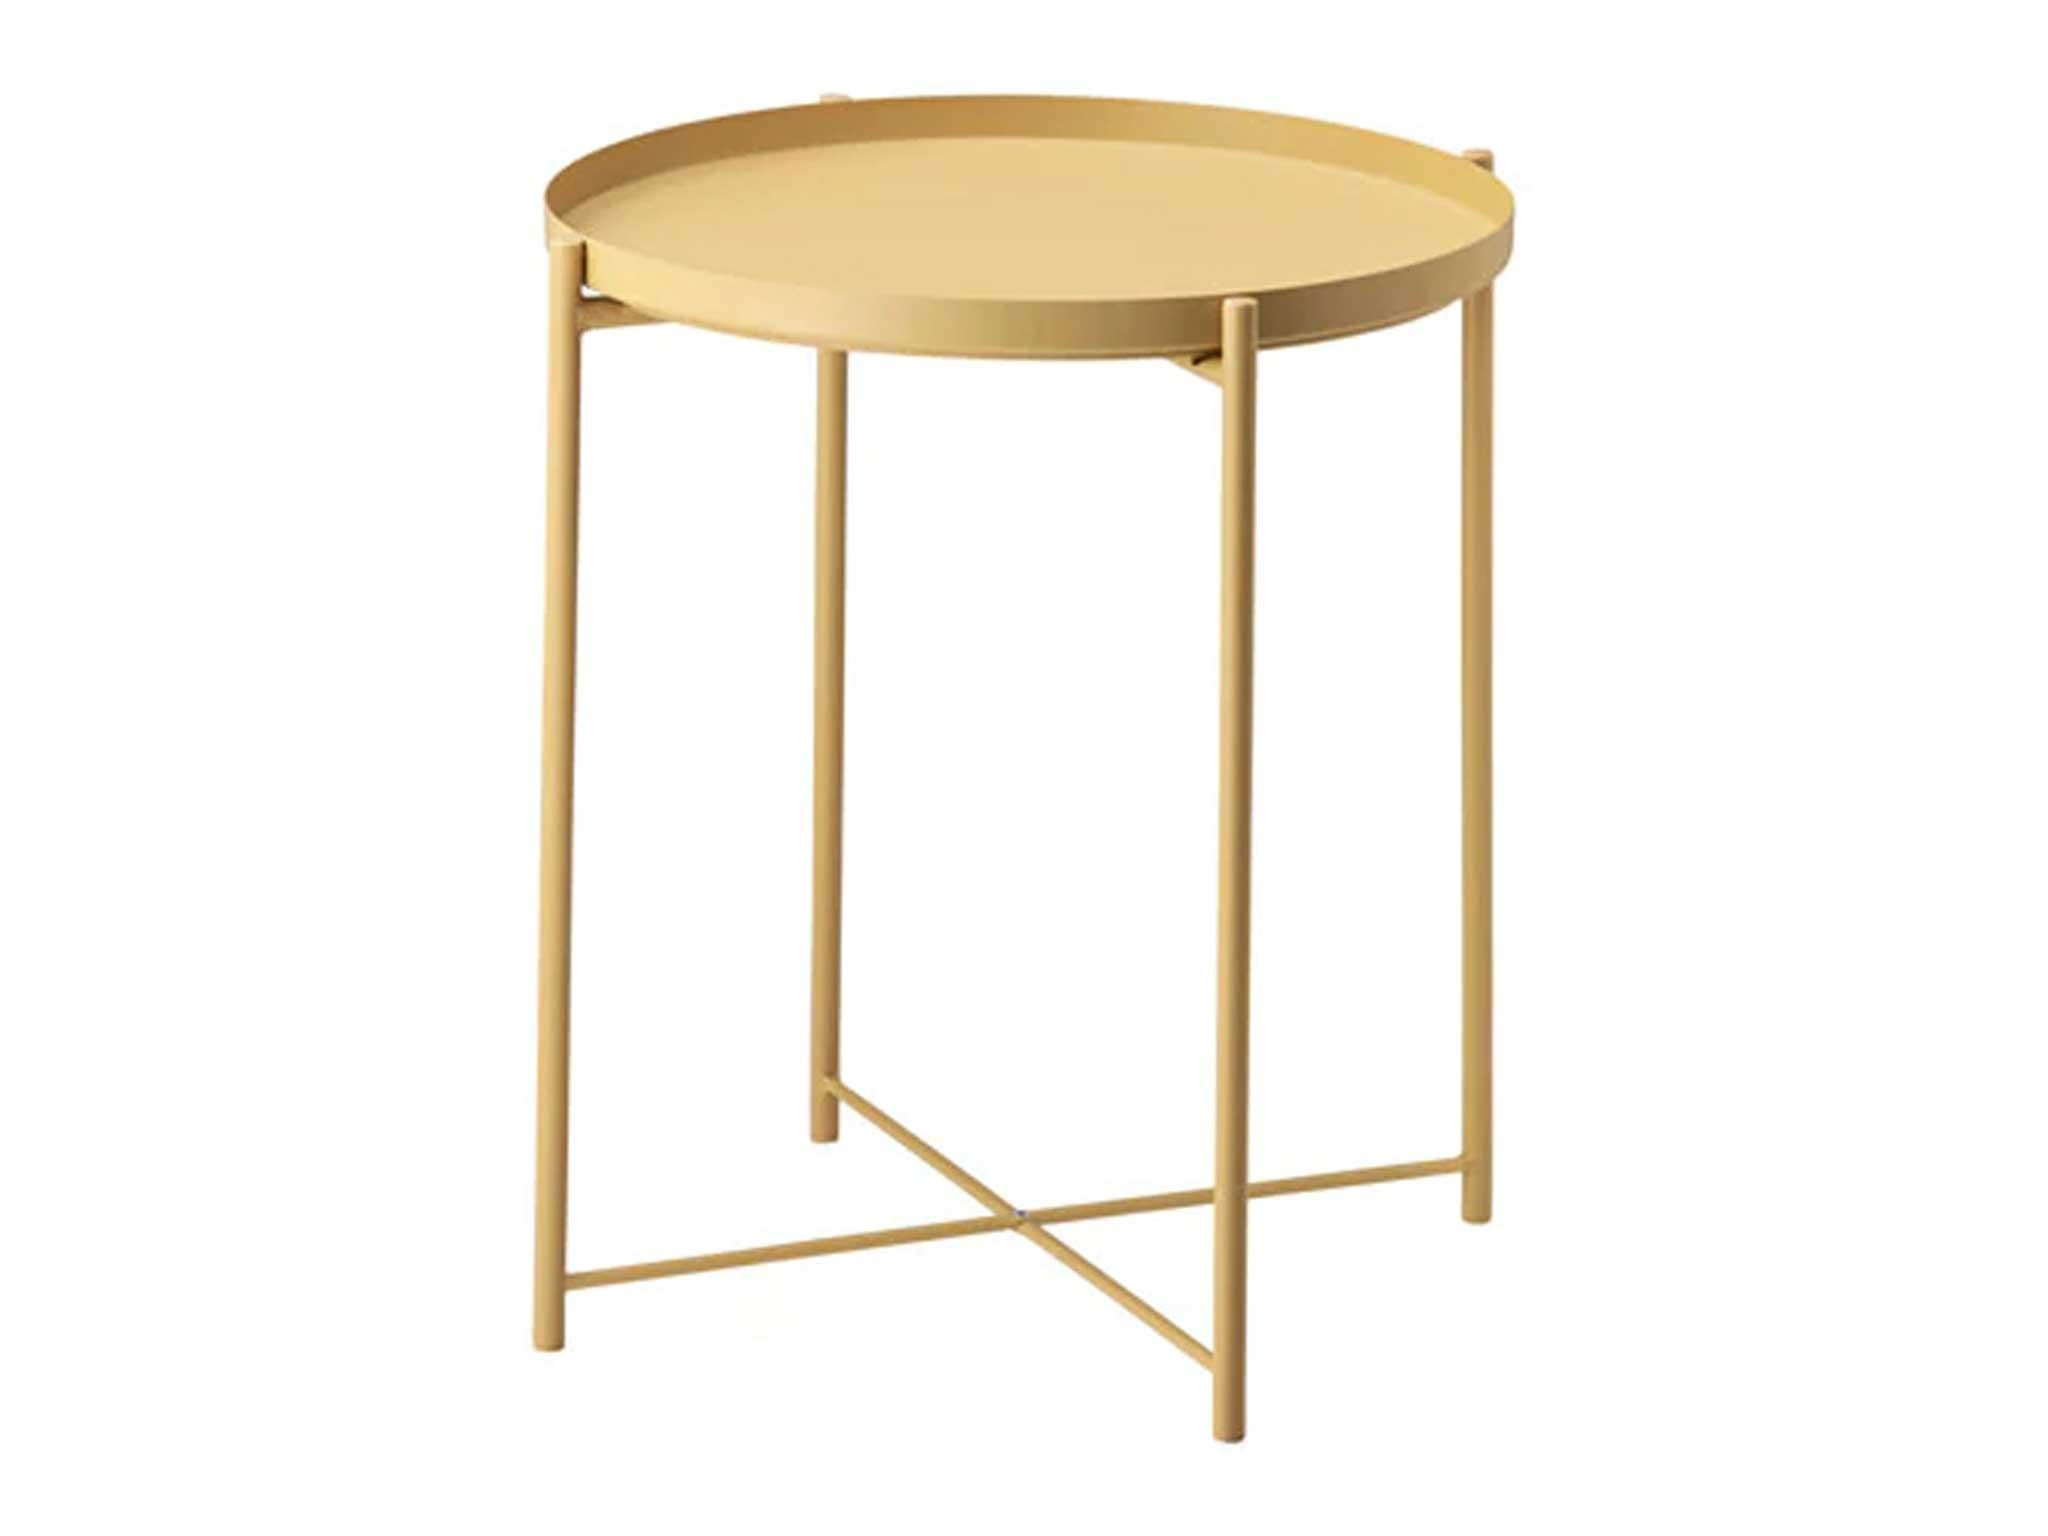 10 best bedside tables the independent built in drawers make bedside tables expensive so if your budget is tight and can cope without the storage a simple side table like ikeas does the job watchthetrailerfo